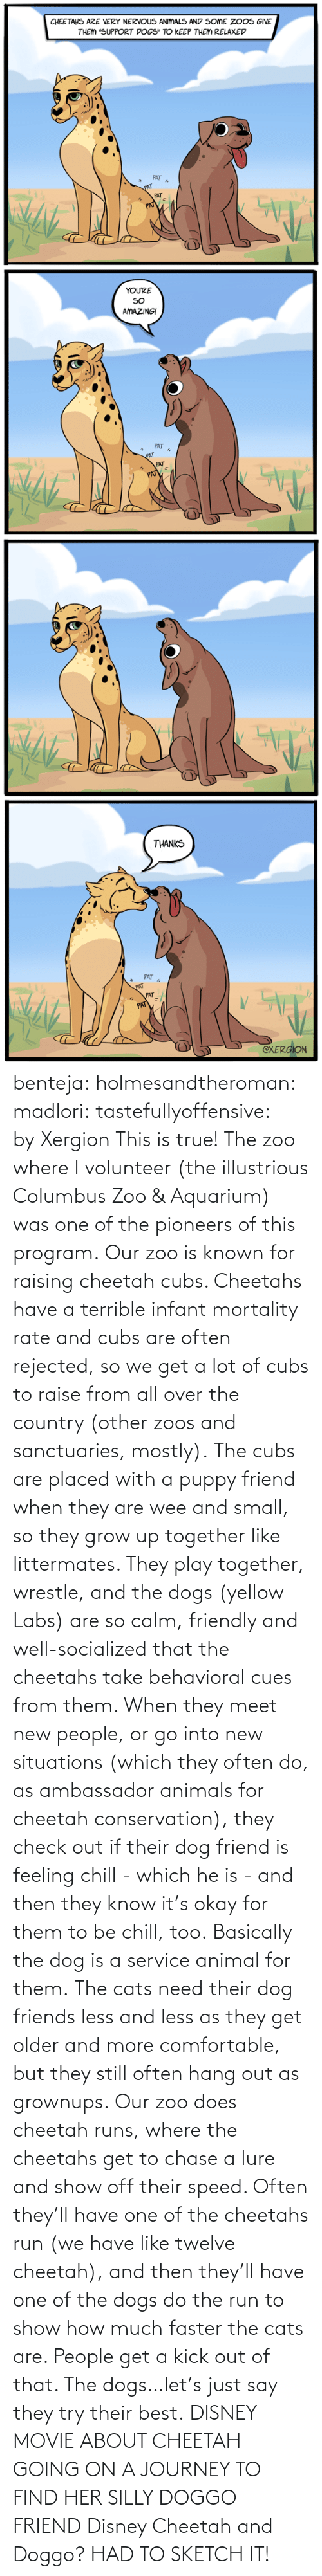 situations: benteja:  holmesandtheroman:  madlori:  tastefullyoffensive: by Xergion This is true! The zoo where I volunteer (the illustrious Columbus Zoo & Aquarium) was one of the pioneers of this program. Our zoo is known for raising cheetah cubs. Cheetahs have a terrible infant mortality rate and cubs are often rejected, so we get a lot of cubs to raise from all over the country (other zoos and sanctuaries, mostly). The cubs are placed with a puppy friend when they are wee and small, so they grow up together like littermates. They play together, wrestle, and the dogs (yellow Labs) are so calm, friendly and well-socialized that the cheetahs take behavioral cues from them. When they meet new people, or go into new situations (which they often do, as ambassador animals for cheetah conservation), they check out if their dog friend is feeling chill - which he is - and then they know it's okay for them to be chill, too. Basically the dog is a service animal for them. The cats need their dog friends less and less as they get older and more comfortable, but they still often hang out as grownups. Our zoo does cheetah runs, where the cheetahs get to chase a lure and show off their speed. Often they'll have one of the cheetahs run (we have like twelve cheetah), and then they'll have one of the dogs do the run to show how much faster the cats are. People get a kick out of that. The dogs…let's just say they try their best.   DISNEY MOVIE ABOUT CHEETAH GOING ON A JOURNEY TO FIND HER SILLY DOGGO FRIEND  Disney Cheetah and Doggo? HAD TO SKETCH IT!